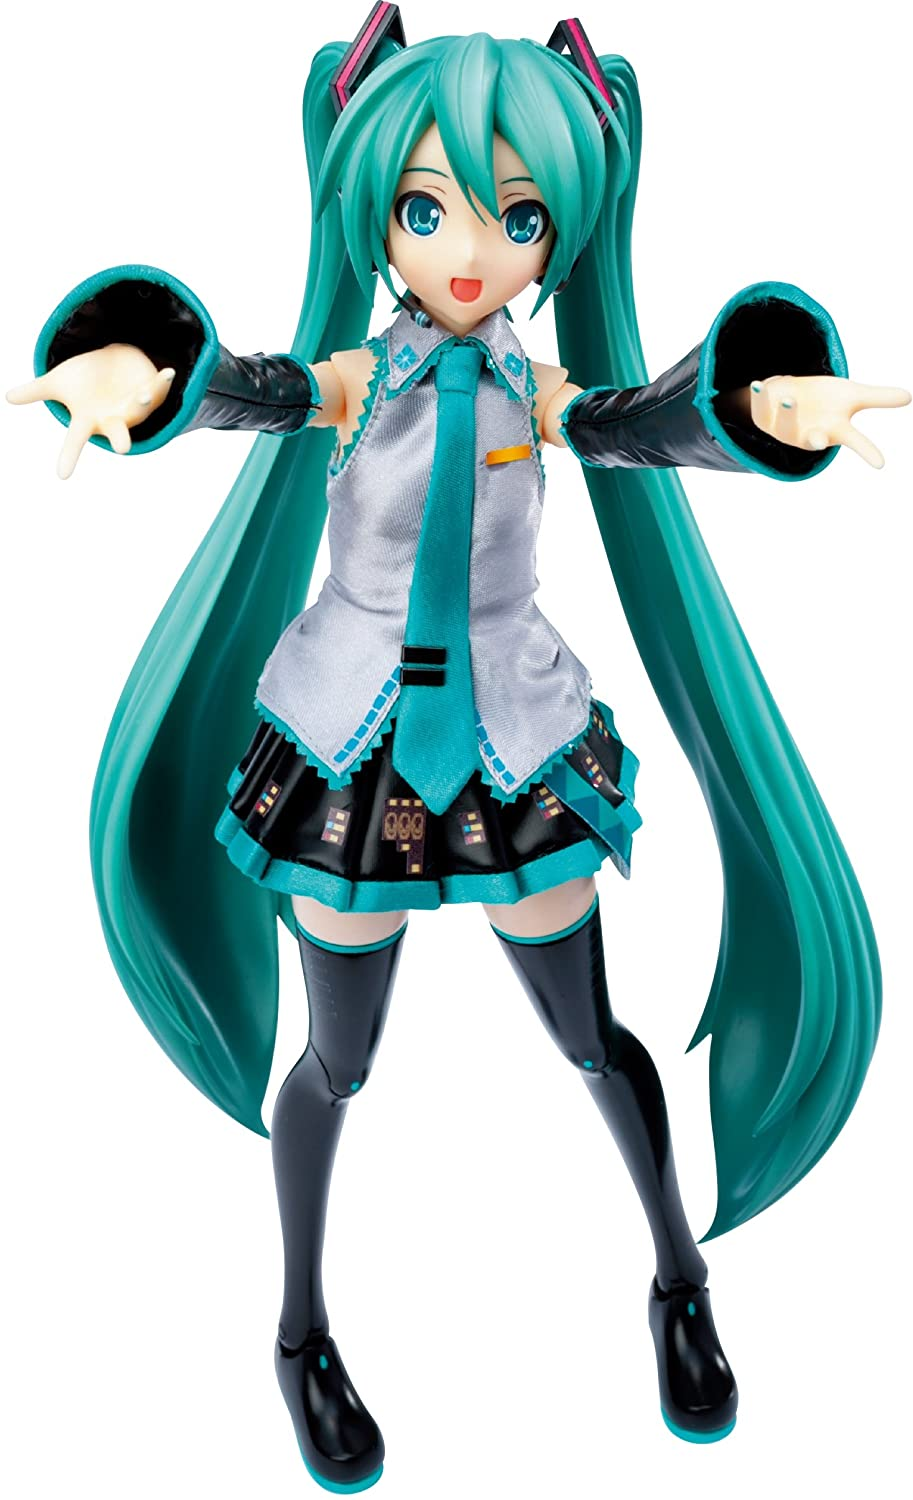 Real Action Heros Character Vocal Series 01: Hatsune Miku Diva F Version Action Muñeca